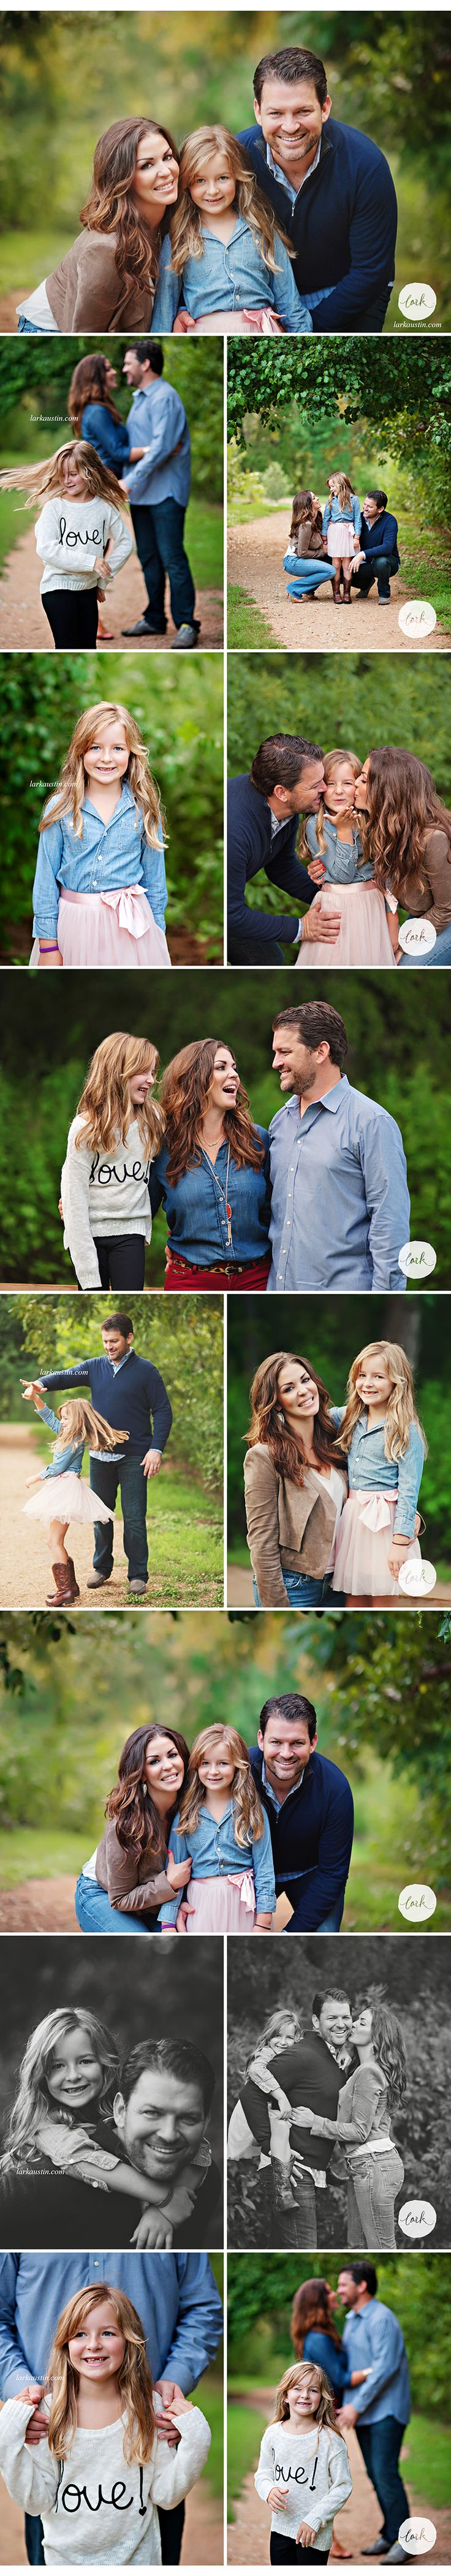 I love the outfit coordination for these pictures! She managed two sets! Great for fall family portraits in Austin, where it's still mostly green foliage. brown, blue, pink & black, white, blue, maroon | Lark Austin Photography Austin, TX